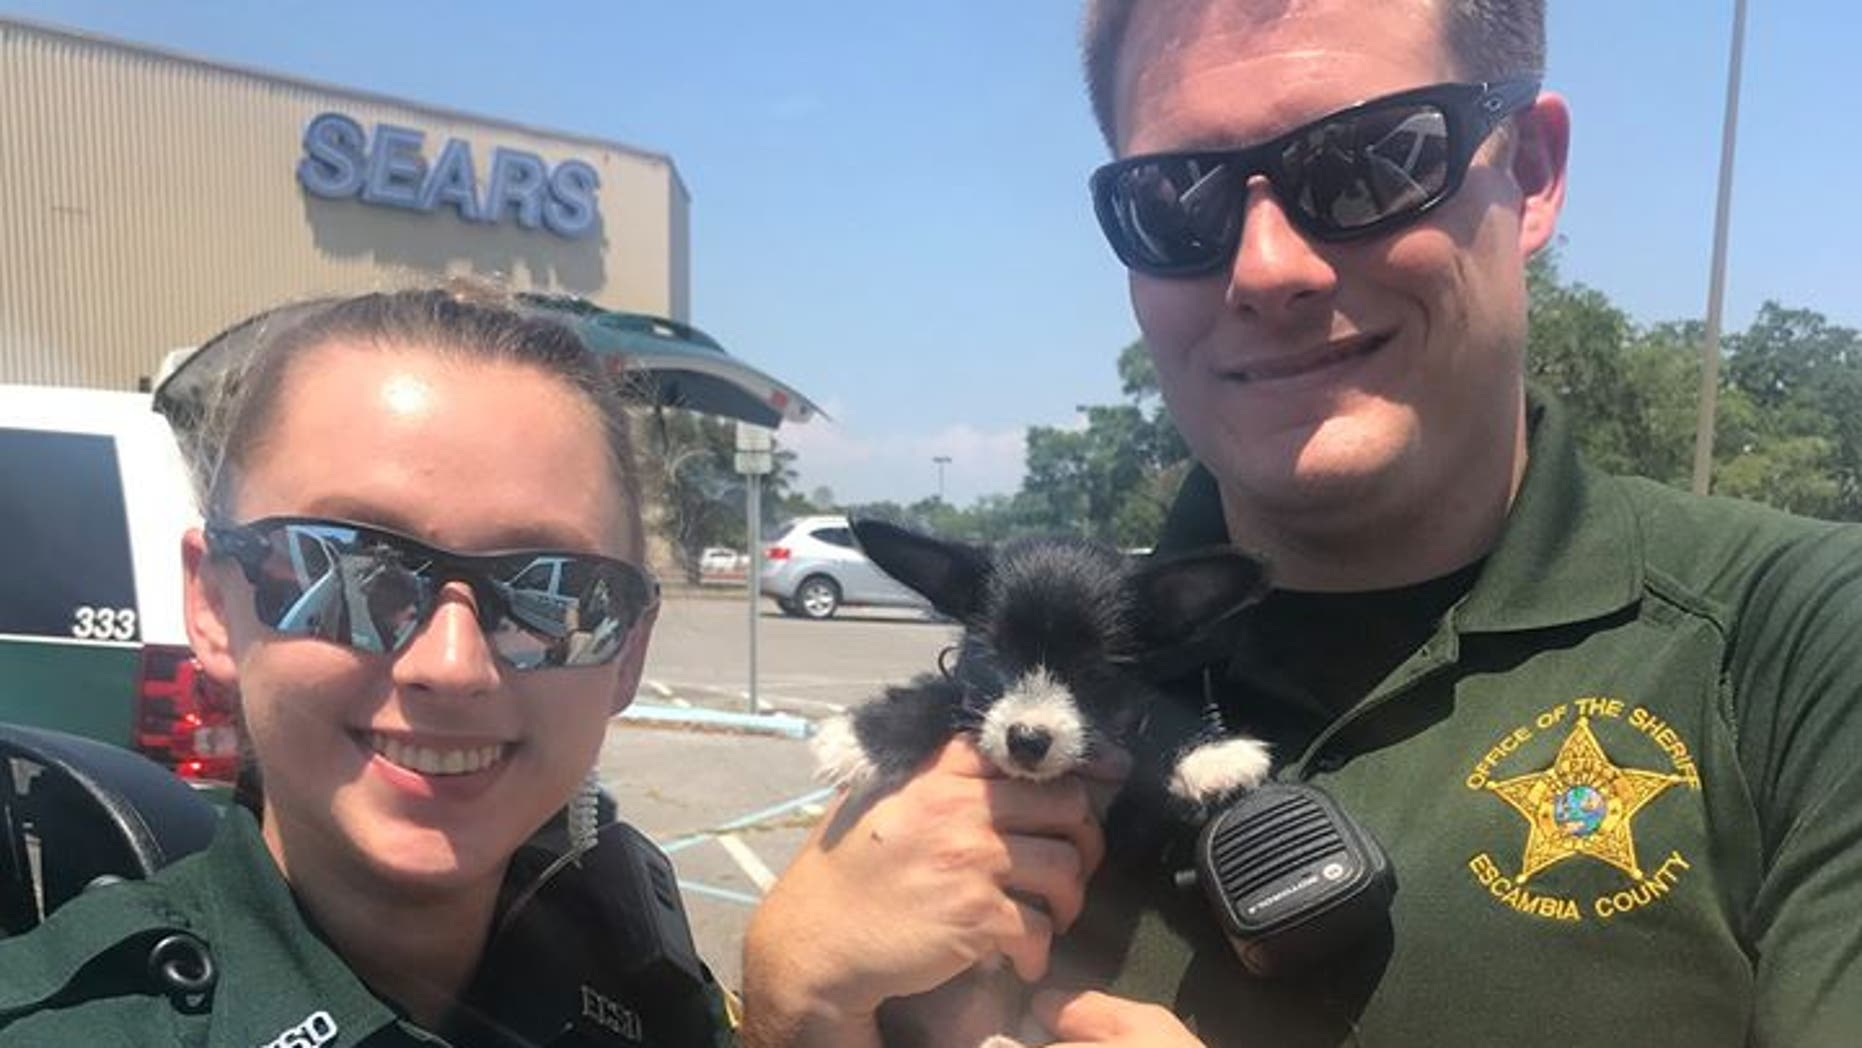 The deputy and deputy trainee rescued the puppy from the hot car on Saturday.